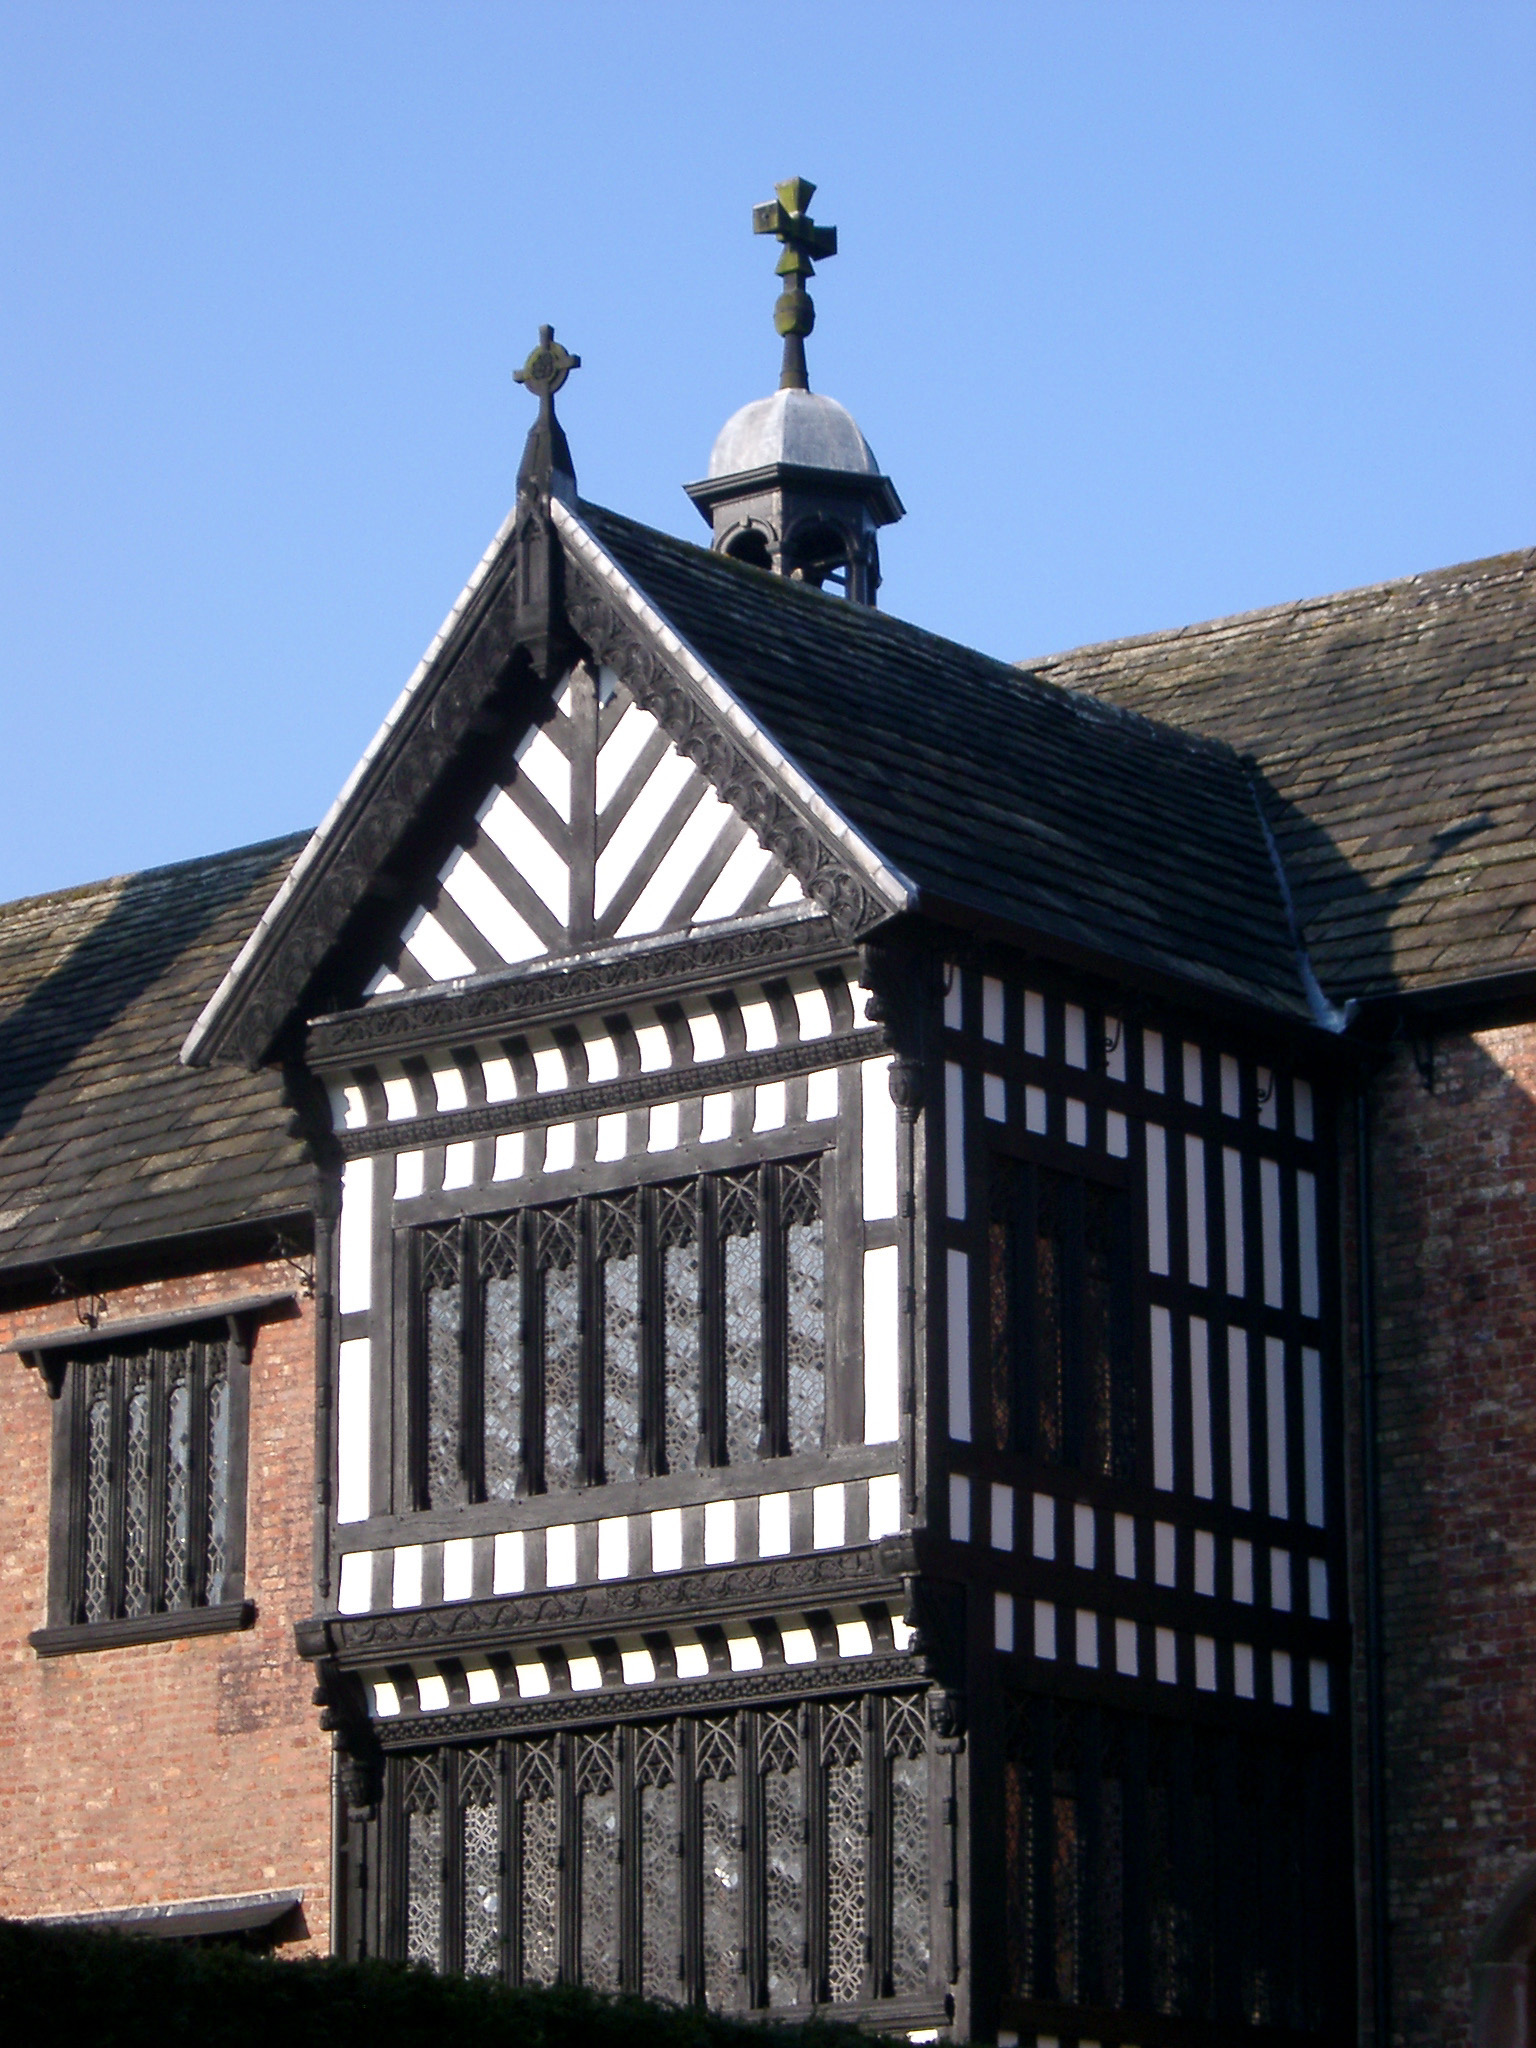 Architectural Detail of Bramall Hall Tudor Manor House in Manchester, England